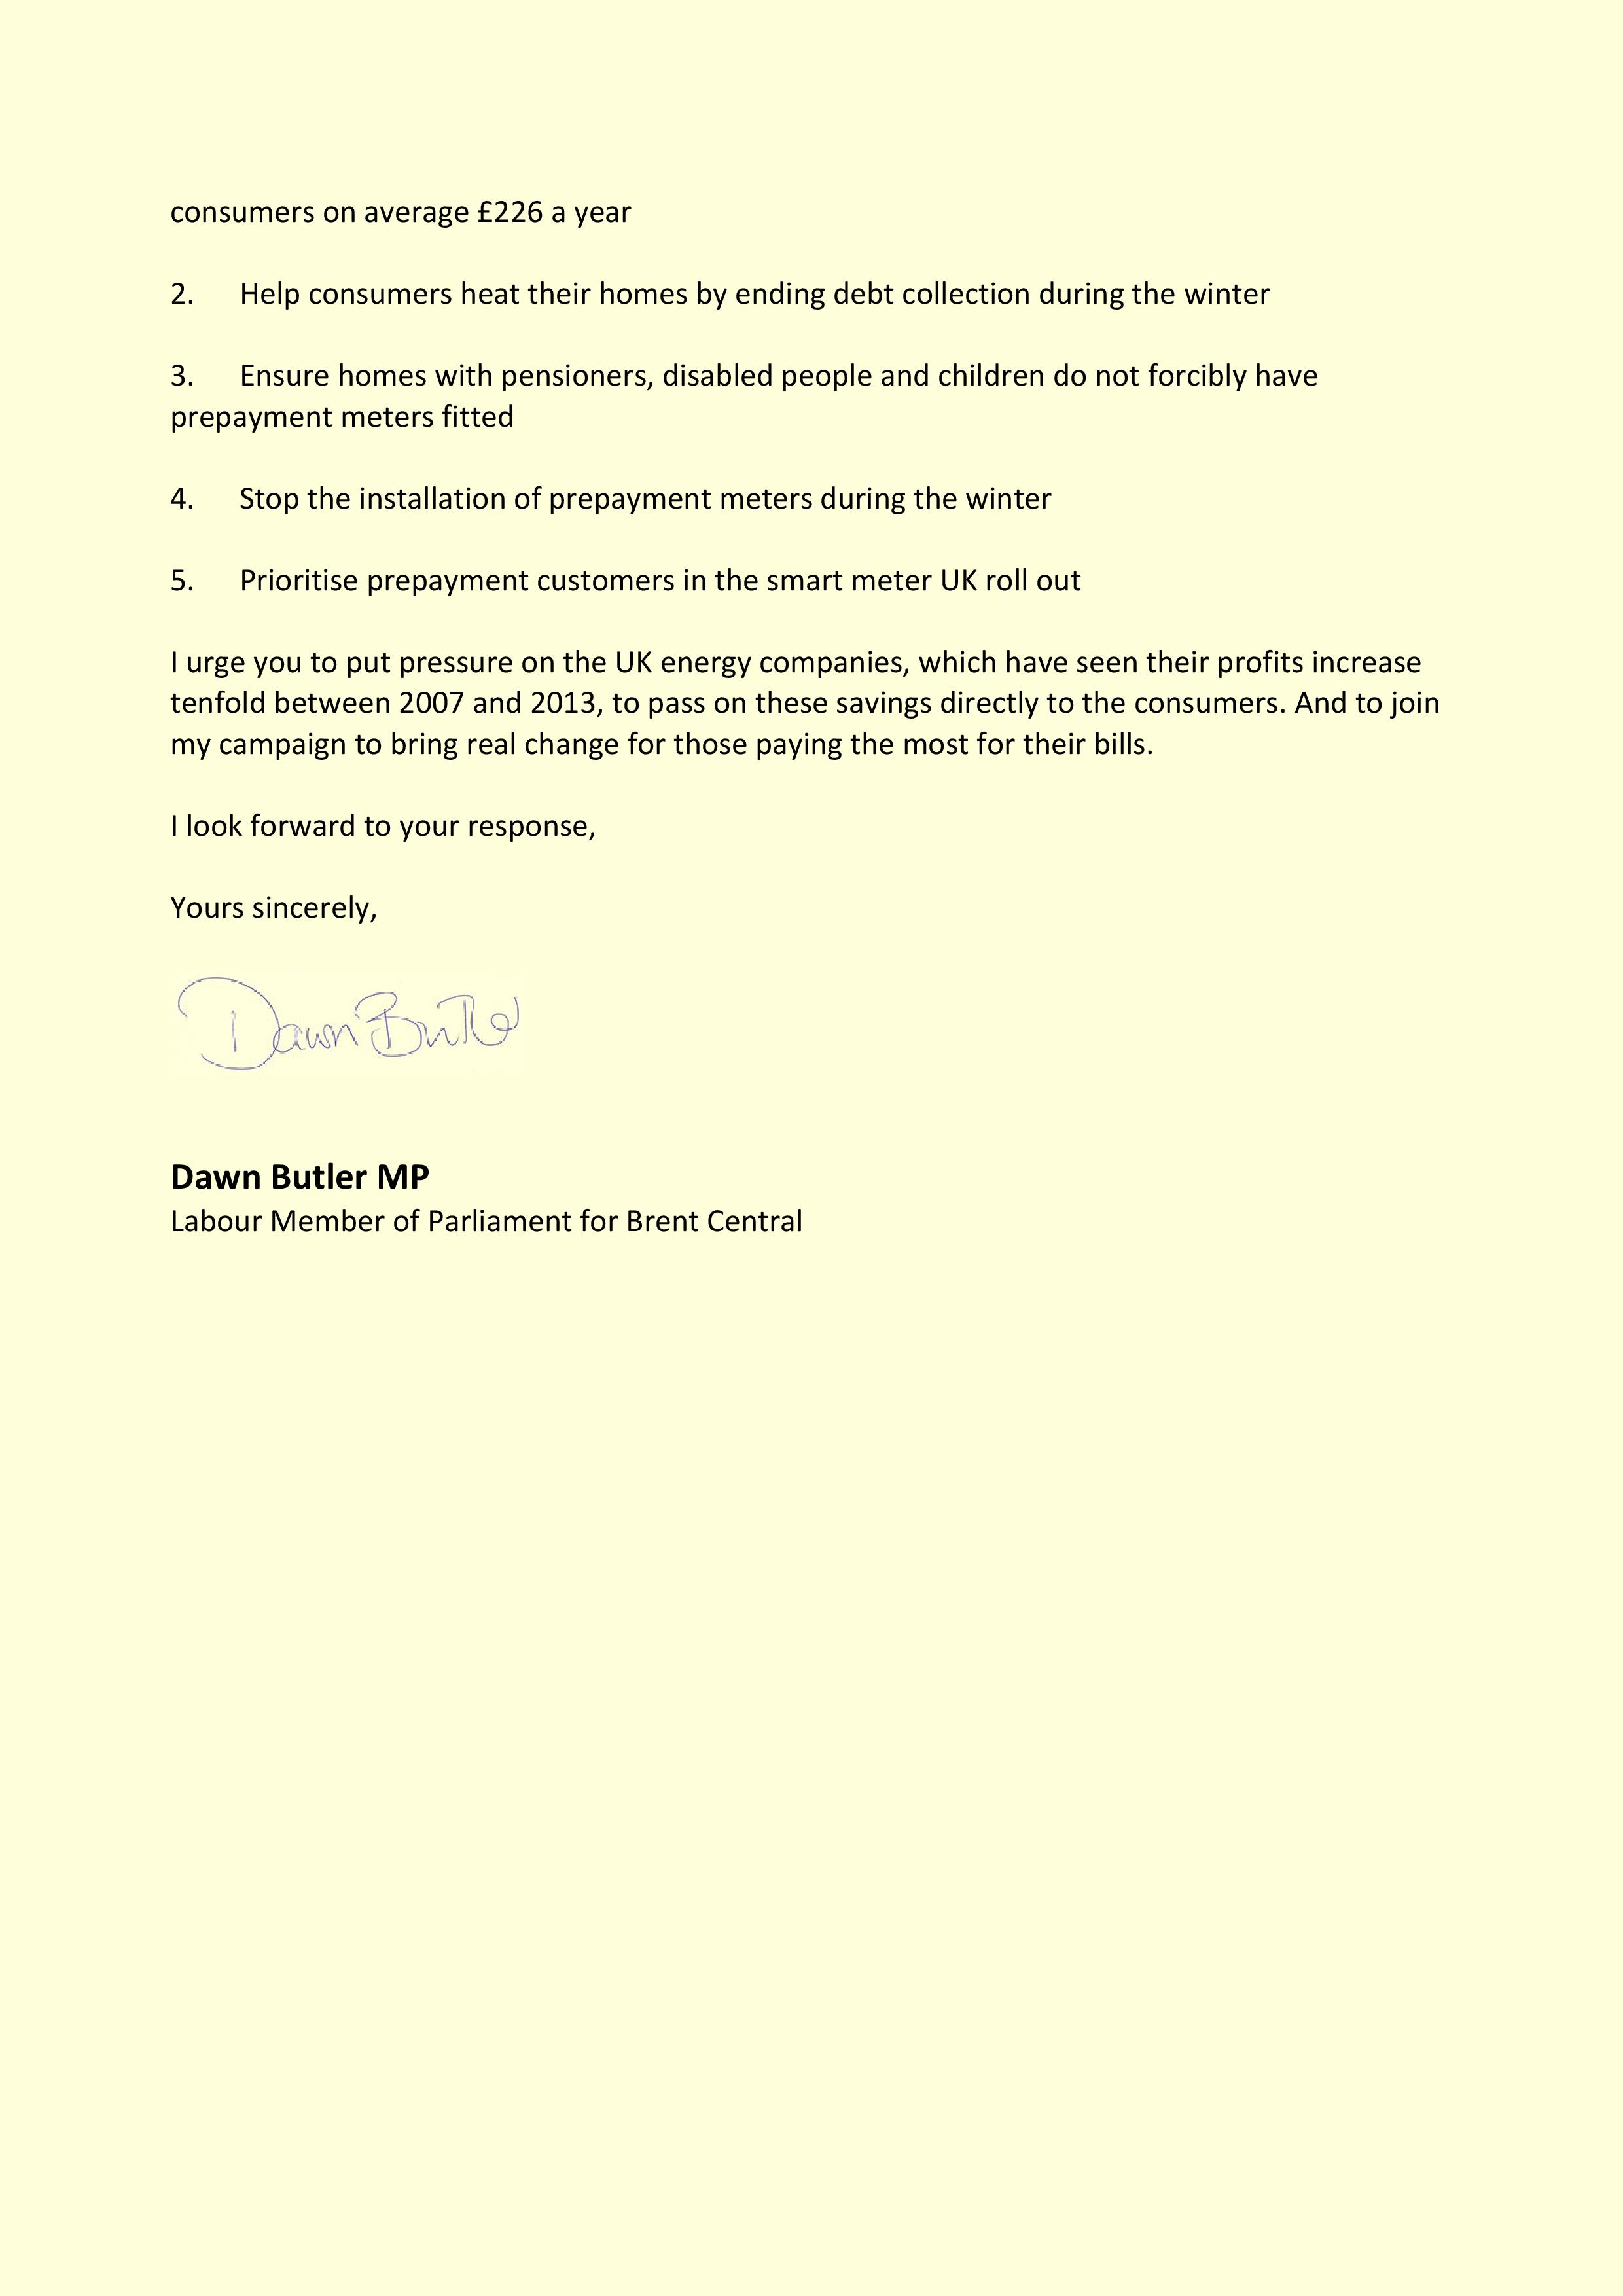 PM_Letter-page-002.jpg